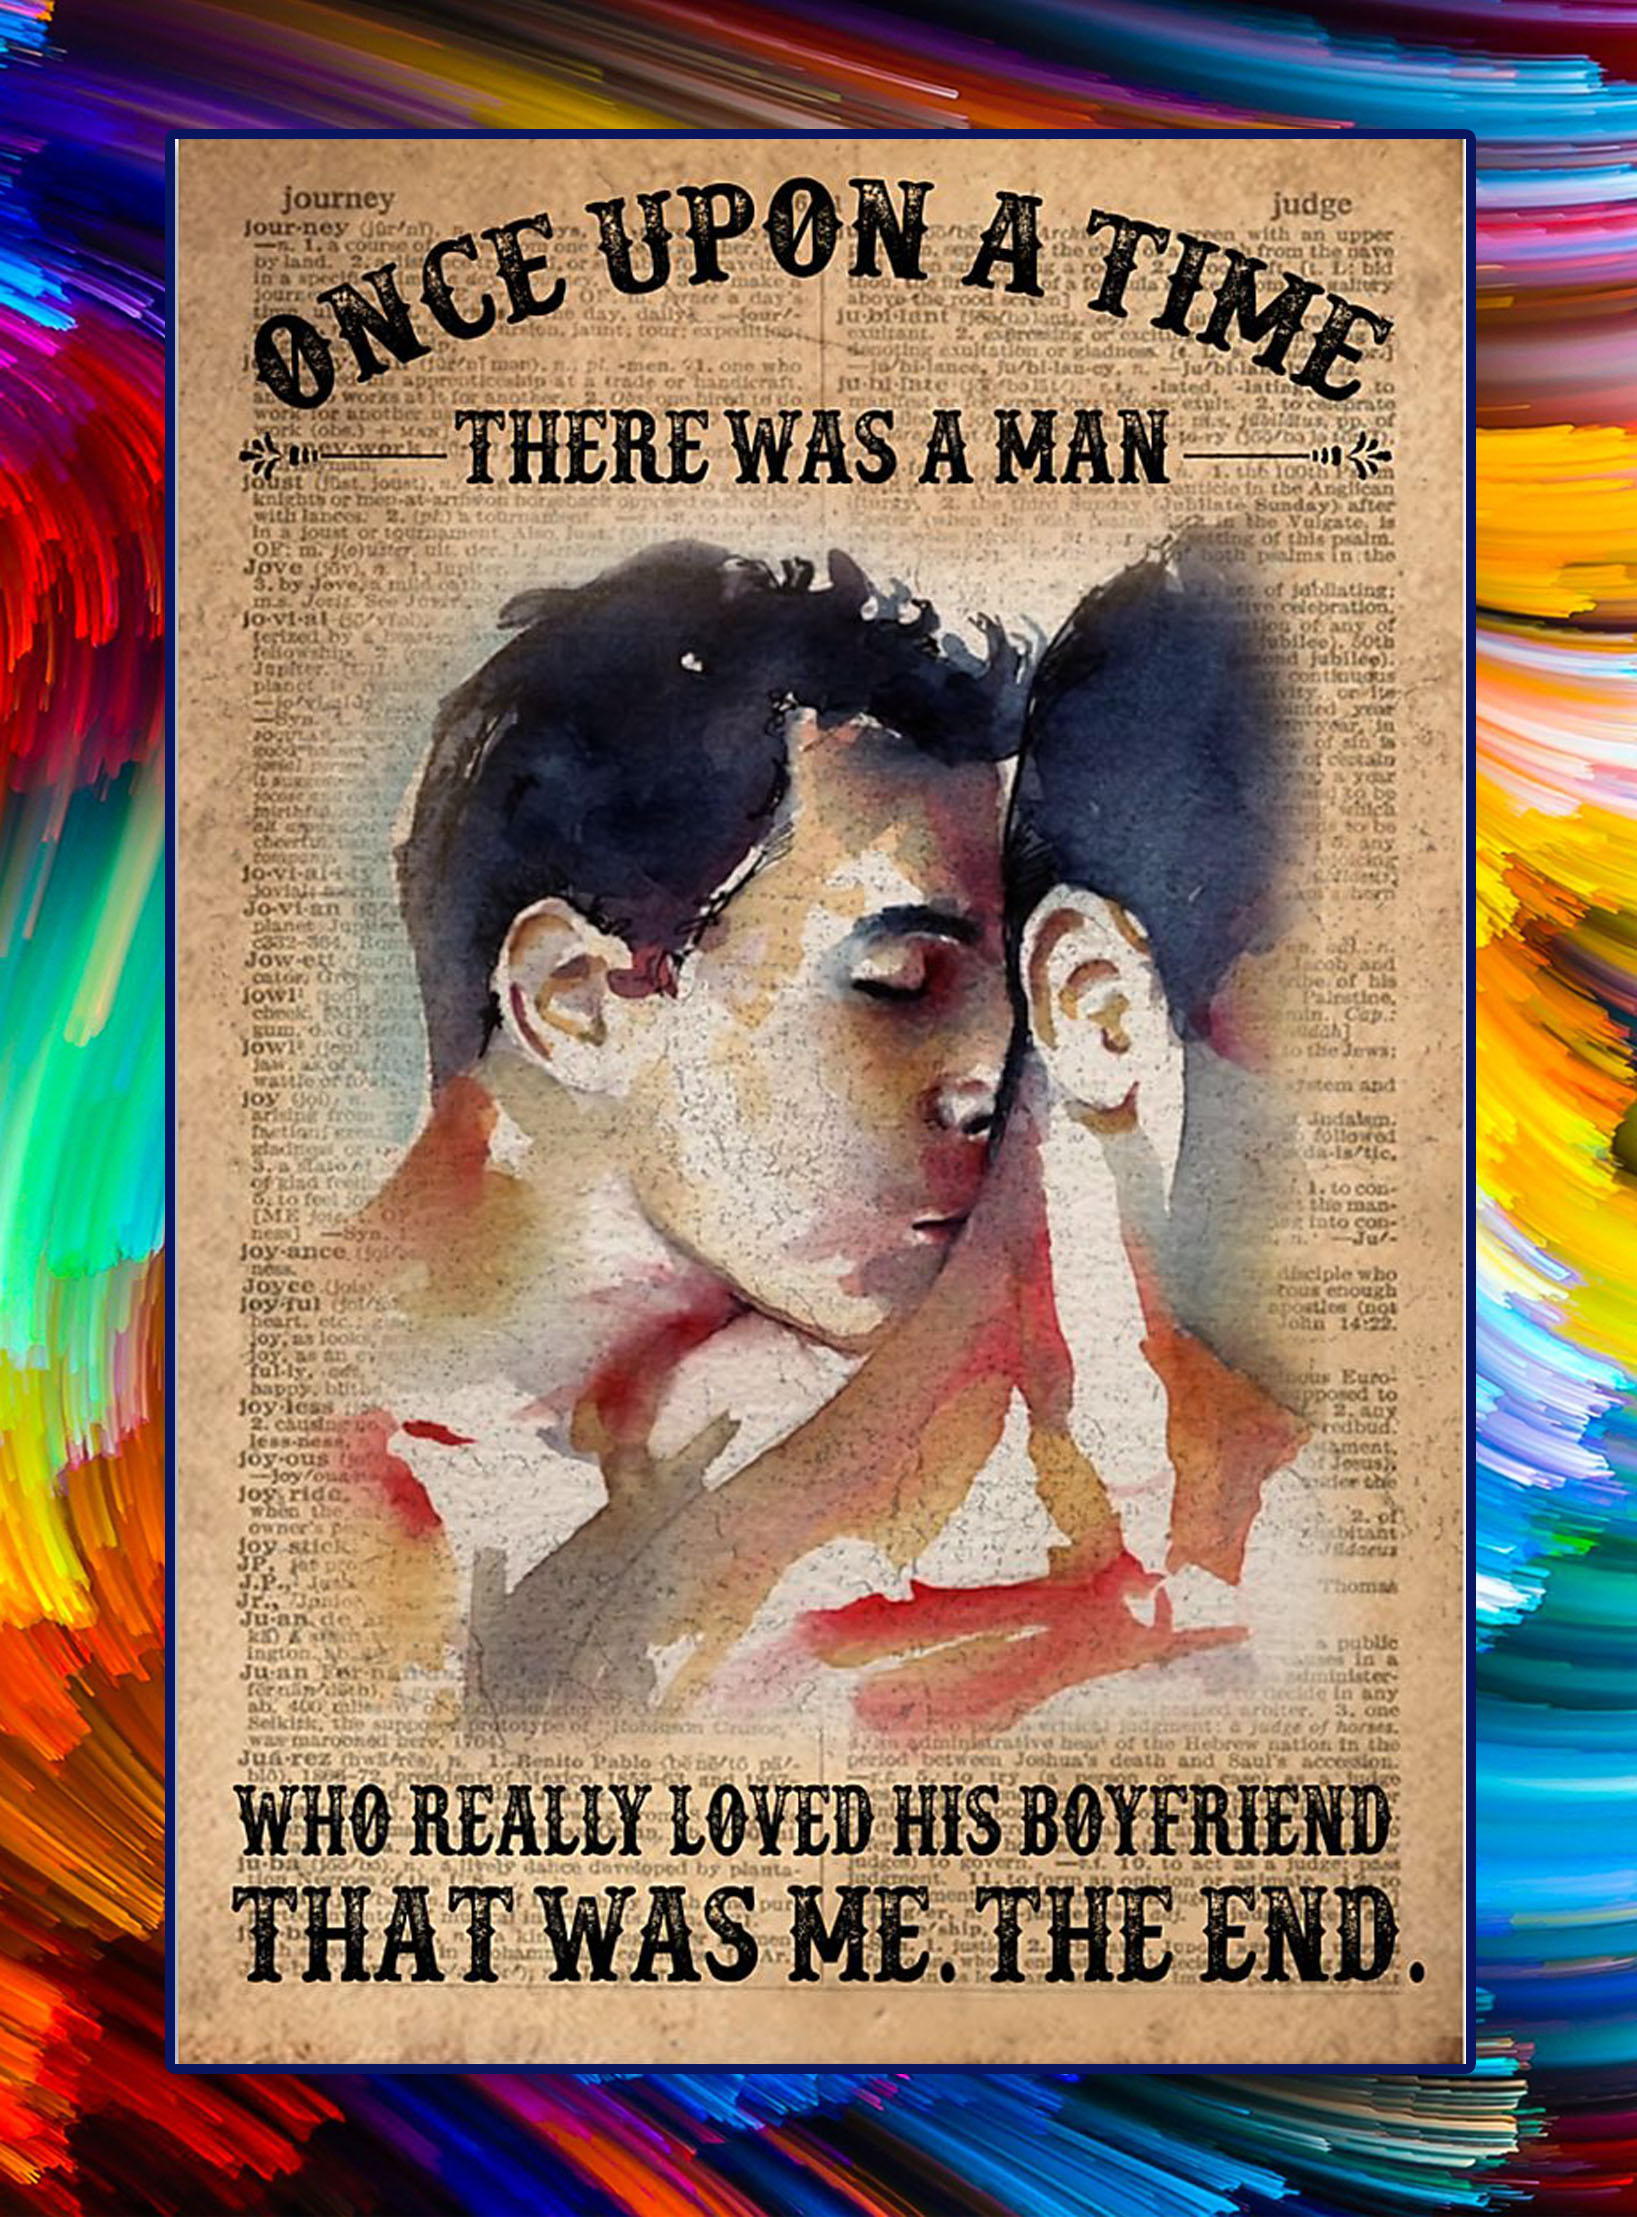 Once upon a time there was a man who really loved his boyfriend poster